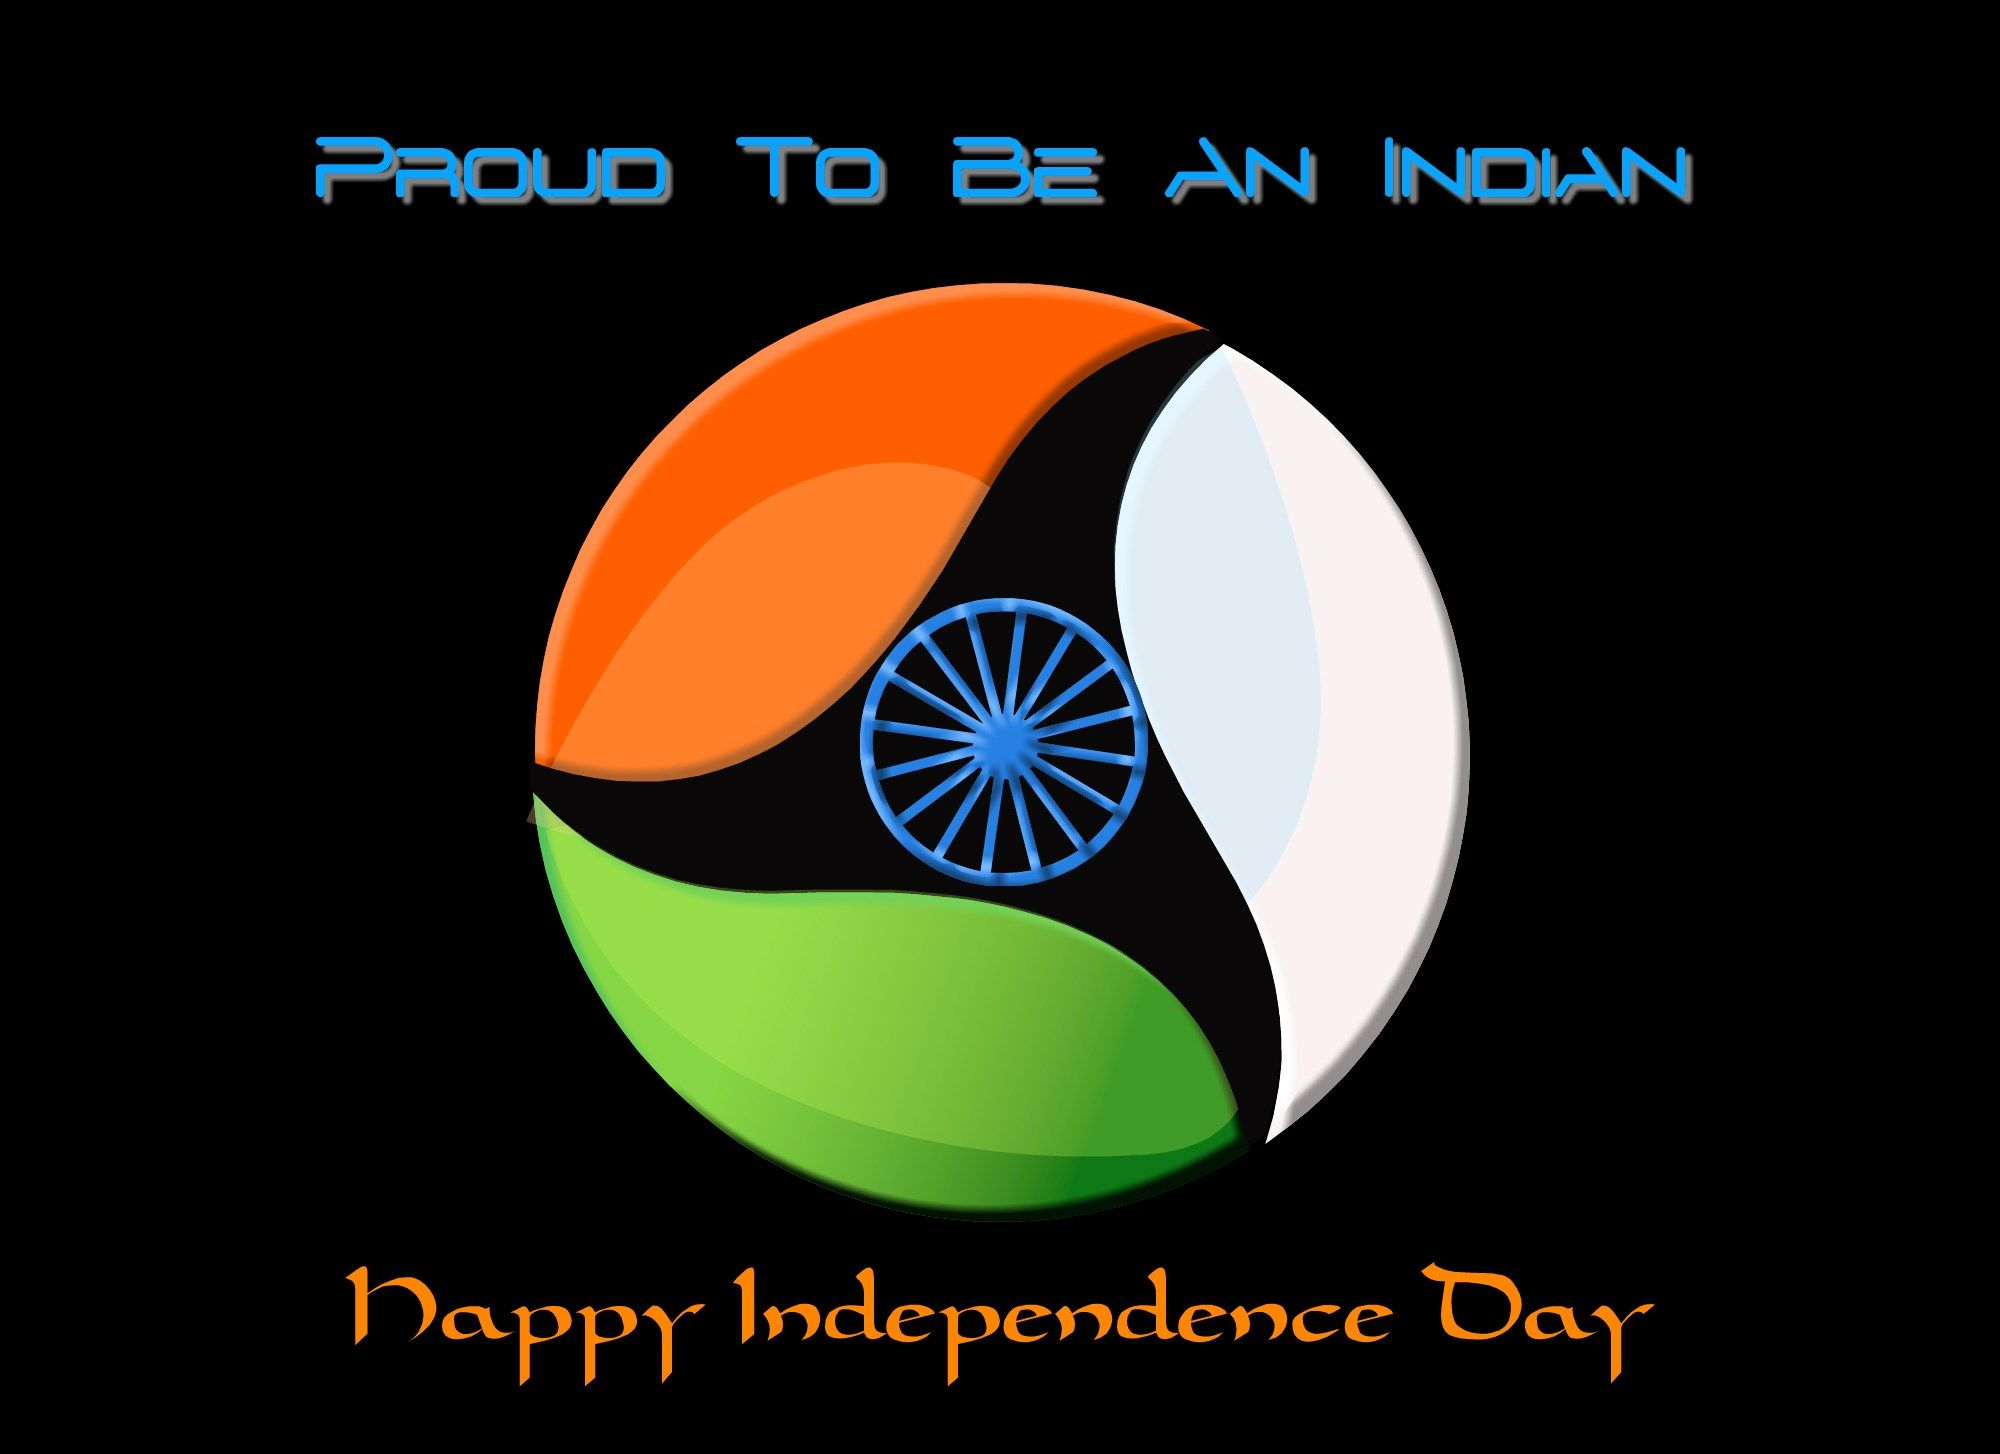 Indian Independence Day Wallpaper Hd Free Ololoshenka Pinterest